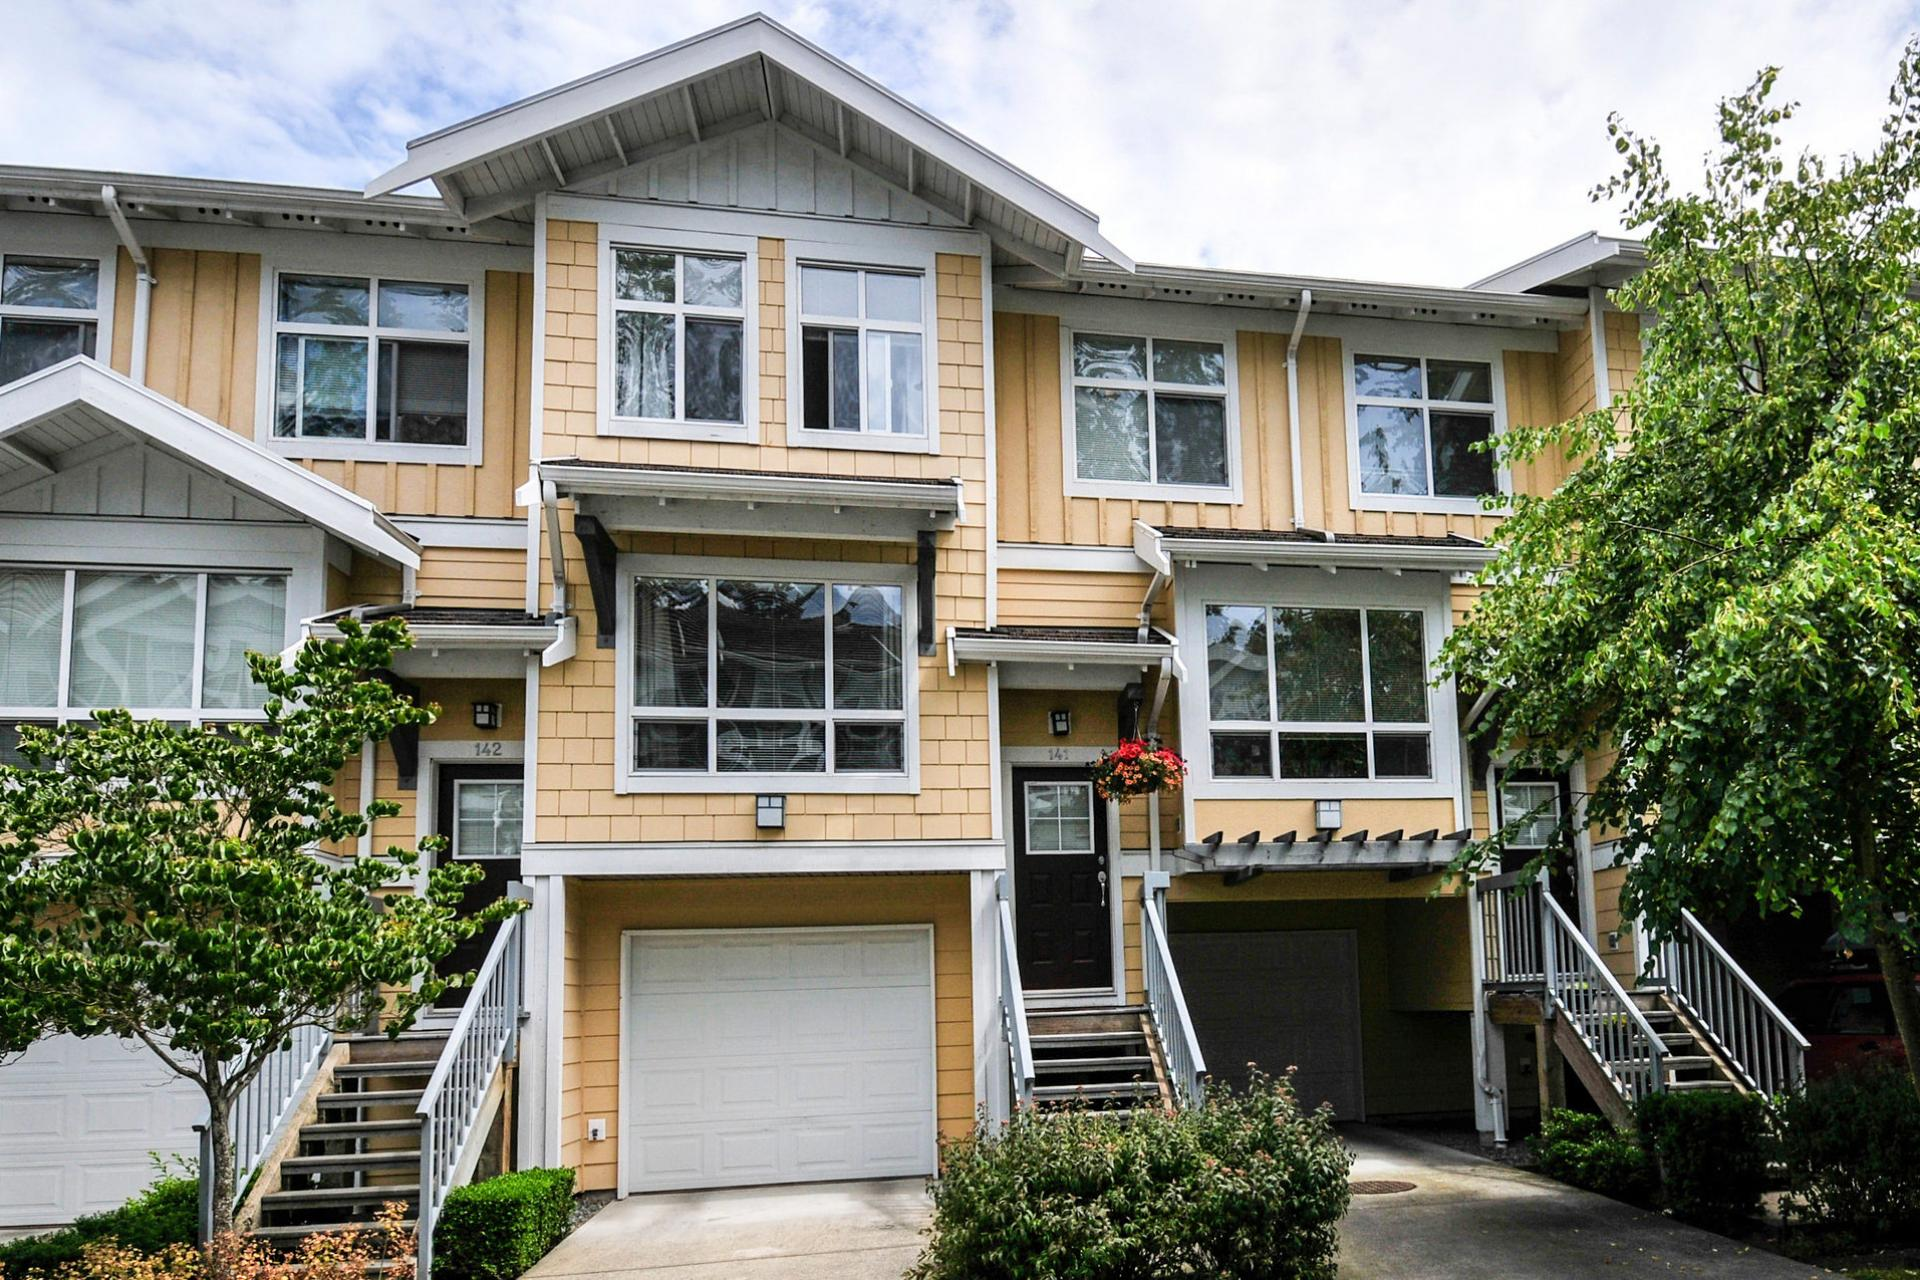 141 - 15168 36 Avenue, Morgan Creek, South Surrey White Rock